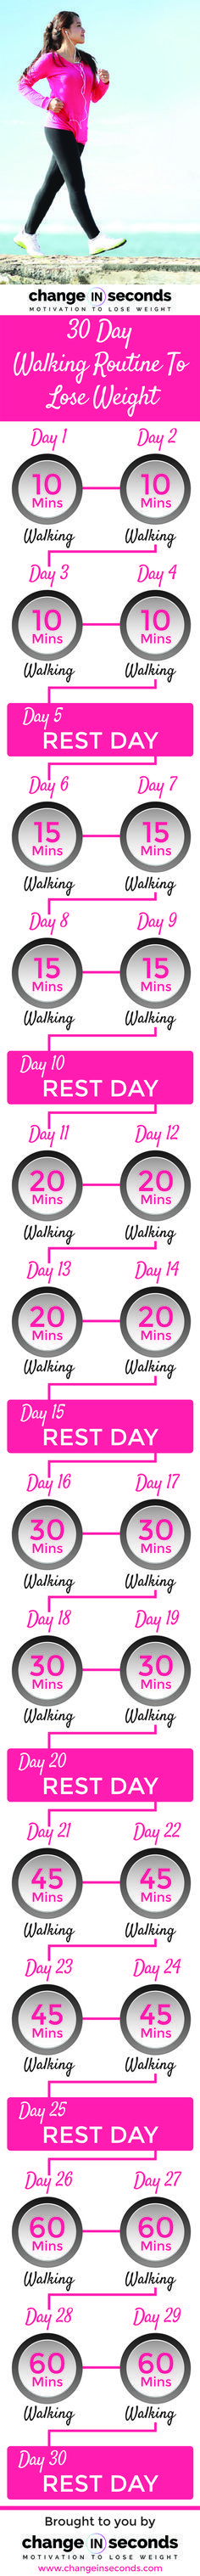 How your body changes after weight loss